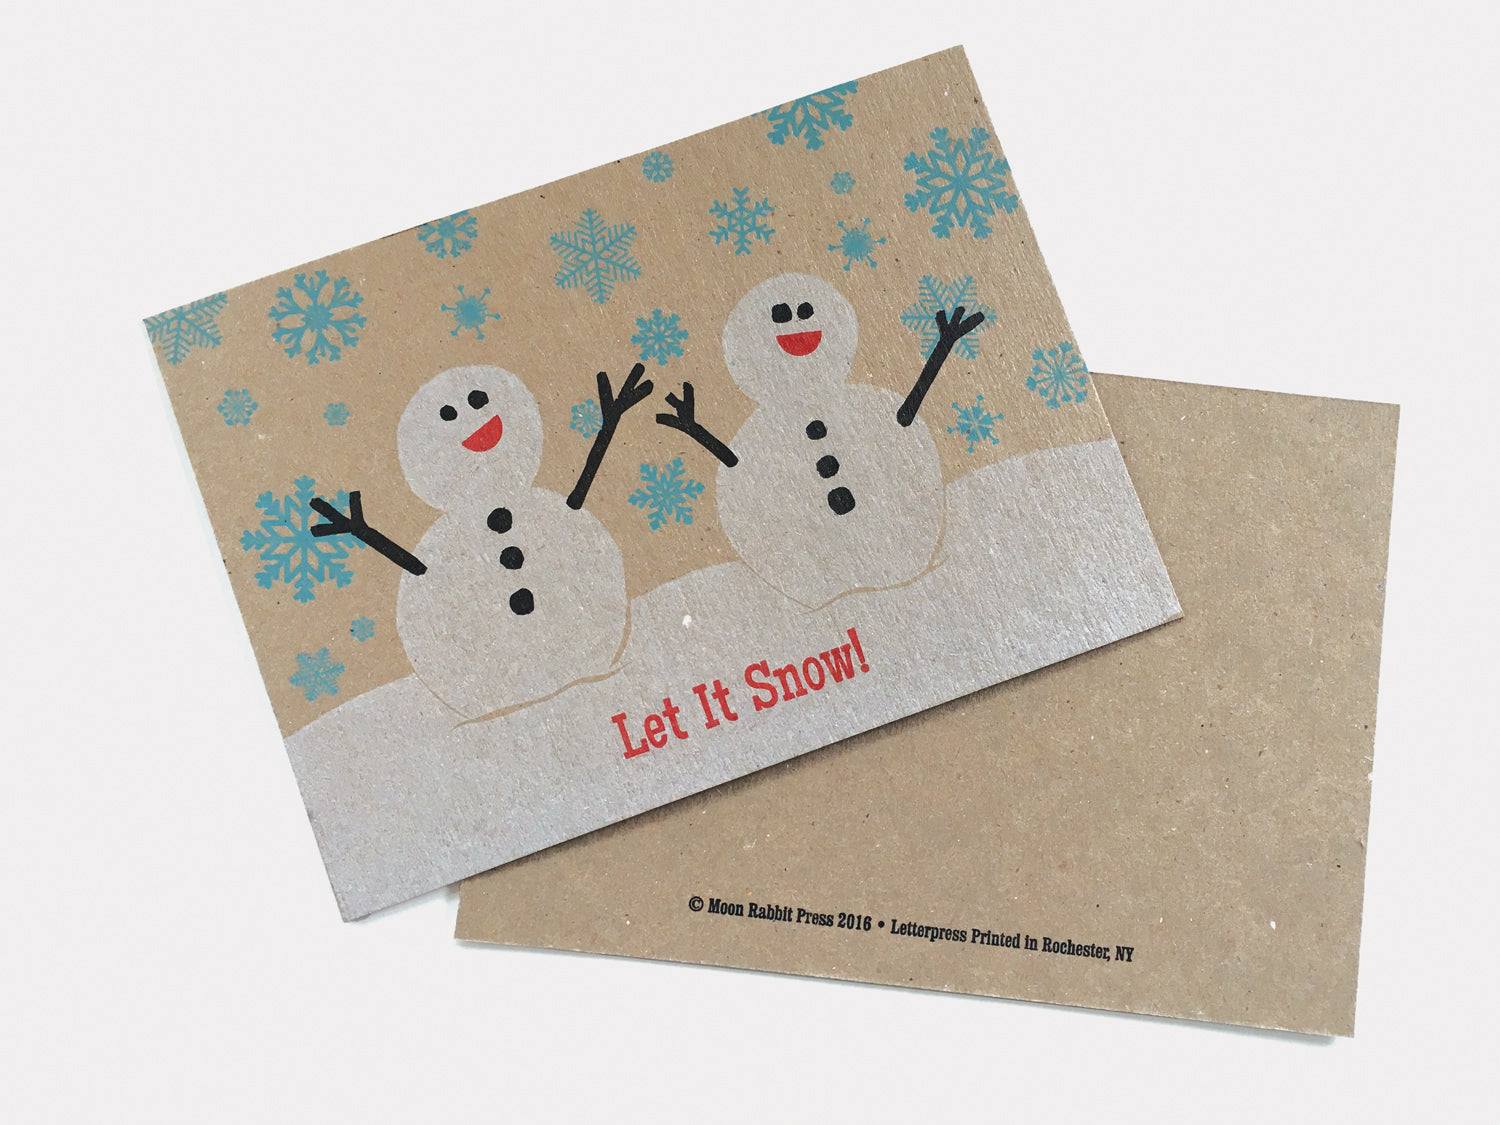 Snowmen Holiday Card, Letterpress Printed, single-sided, 5x7